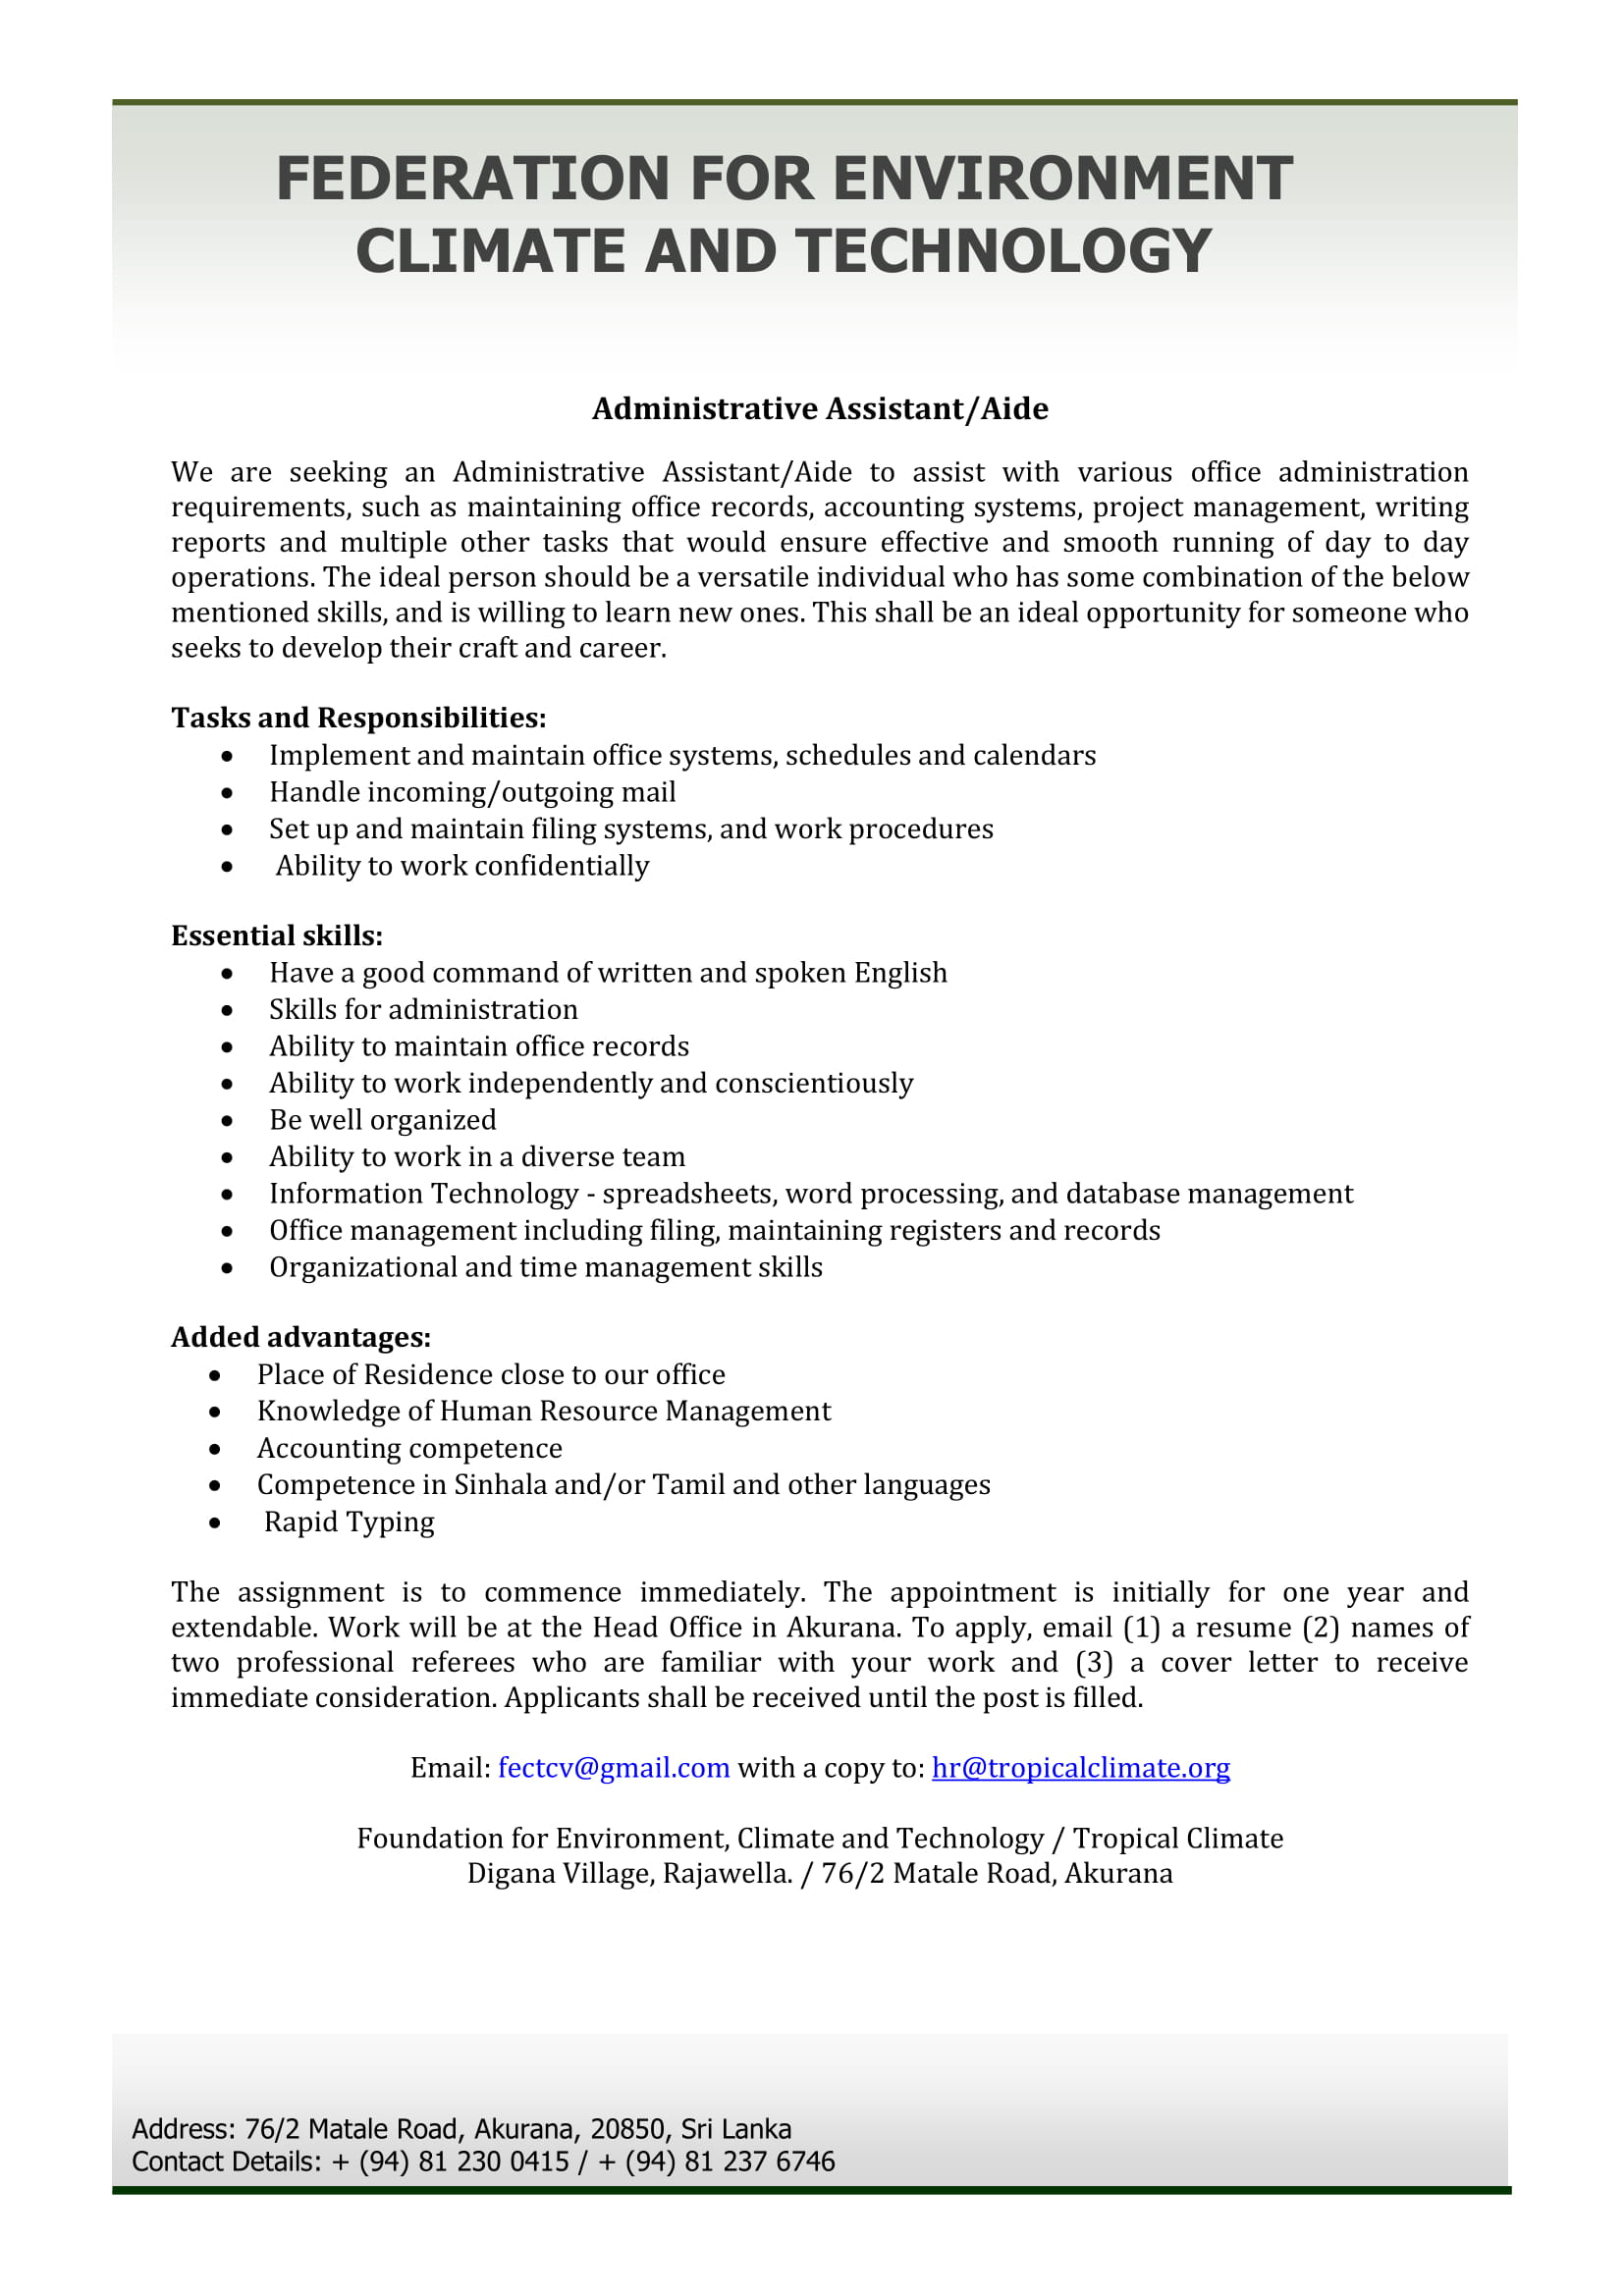 Vacancies are open for Administrative Assistant/Aide